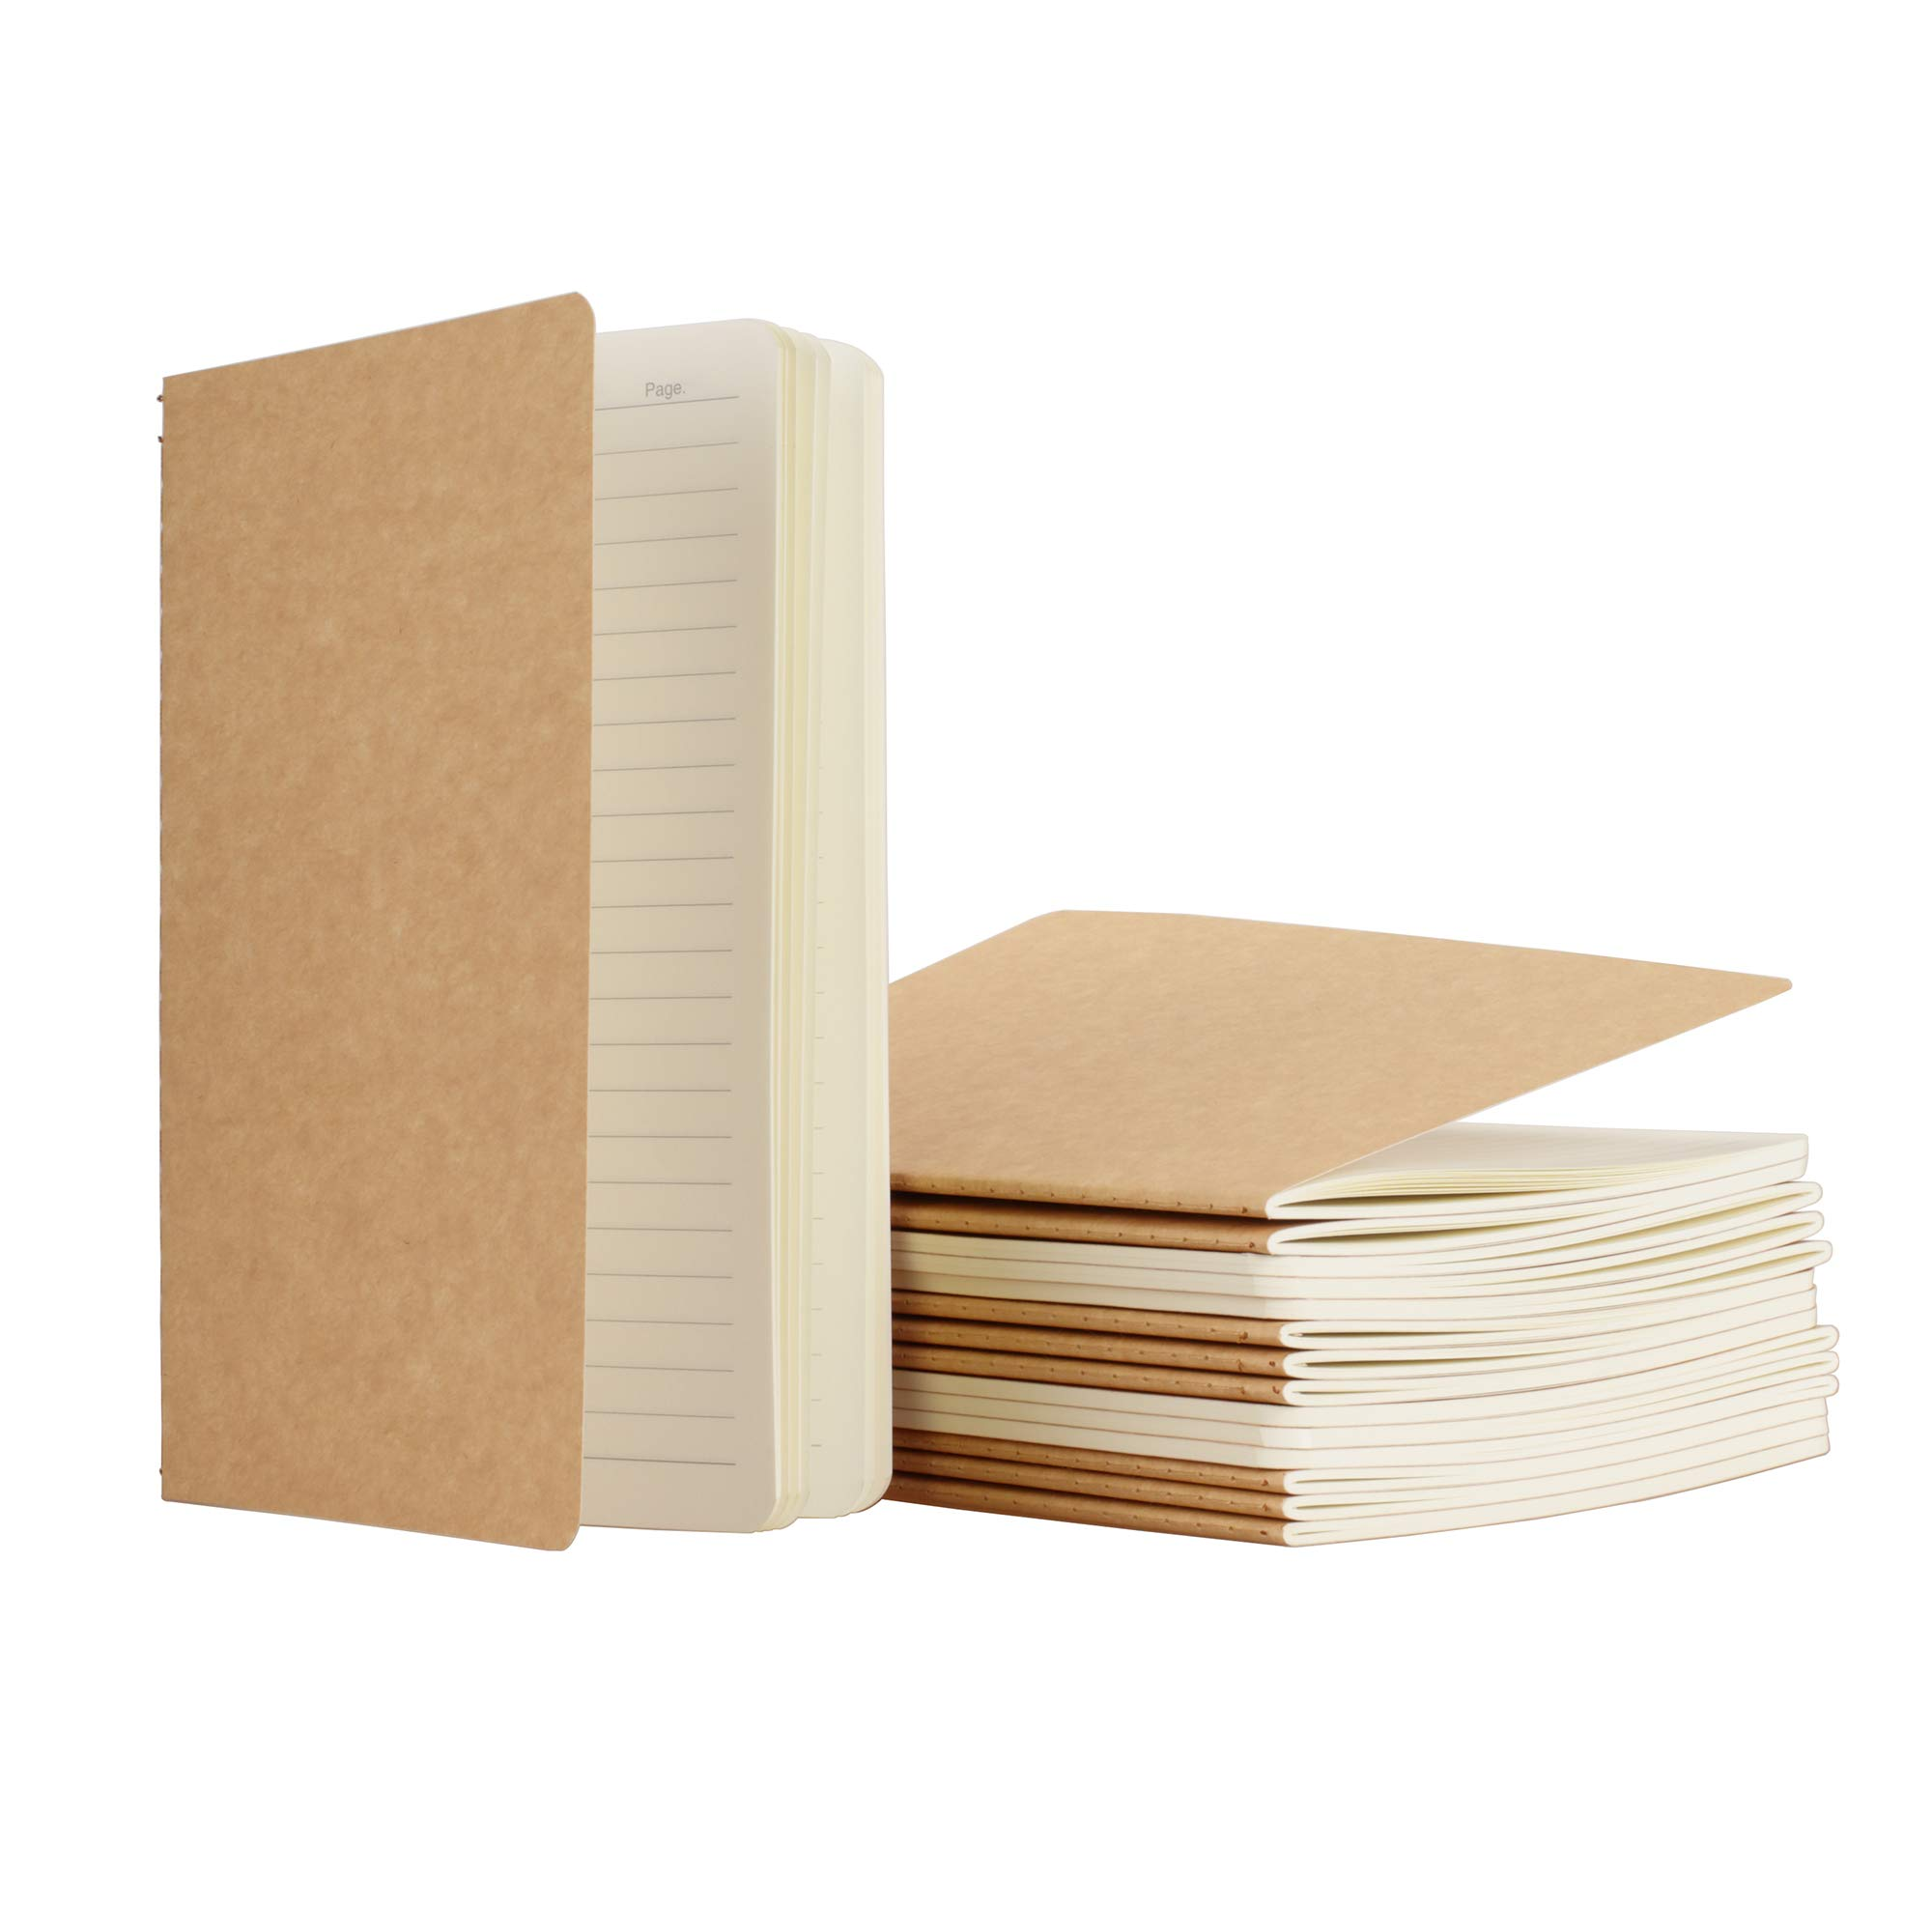 TWONE 15 Packs Kraft Notebook Ruled Pages A5 Kraft Brown Cover Pocket Journal Notebooks for Traveler Diary Note-Taking Ruled 60 Pages/30 Sheets (5.5'' x 8.25'') by TWONE